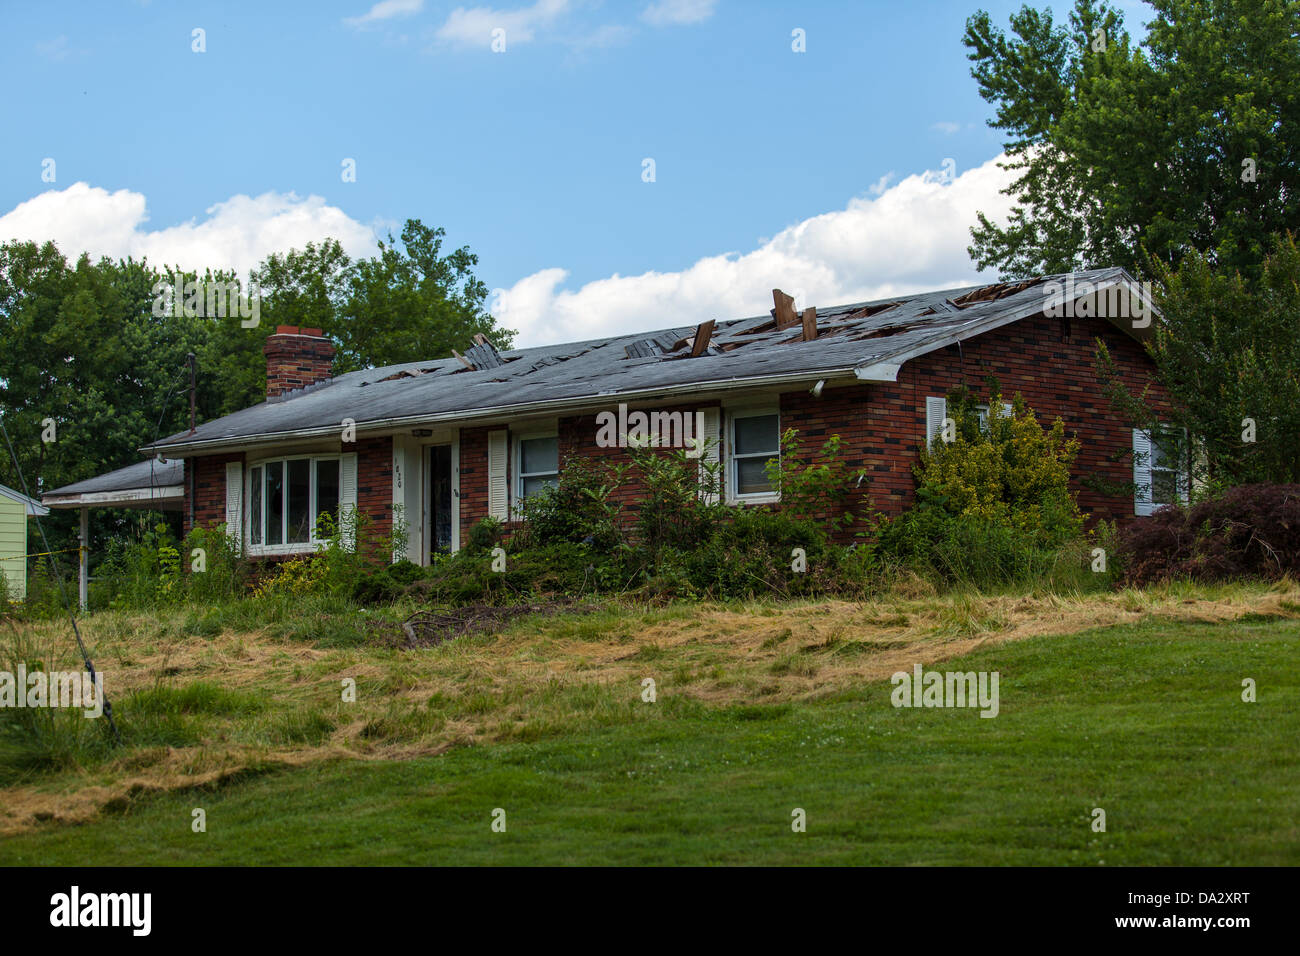 Do not cross Police Line at abandoned house. - Stock Image